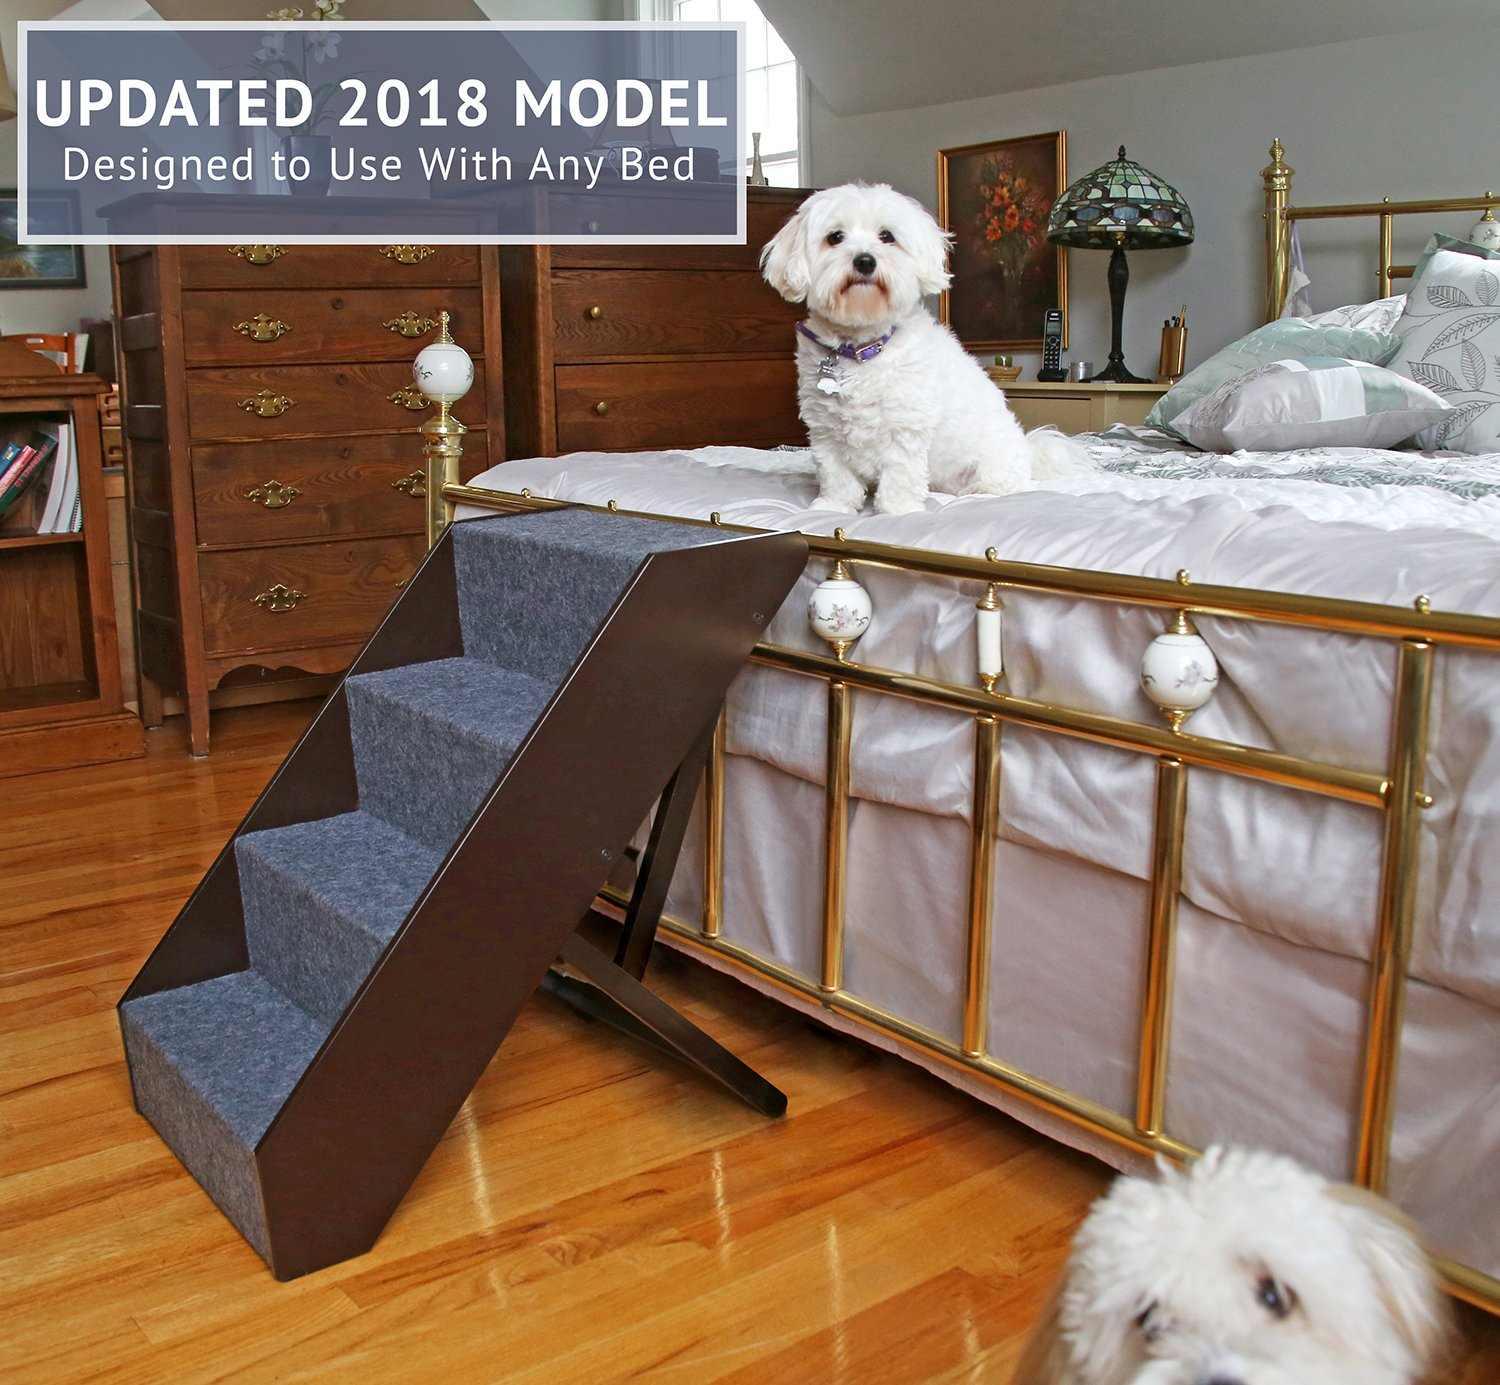 Arf Pets Wood Dog Stairs, 4 Levels Height Adjustment Wide Pet Steps, Foldable by Arf Pets (Image #3)